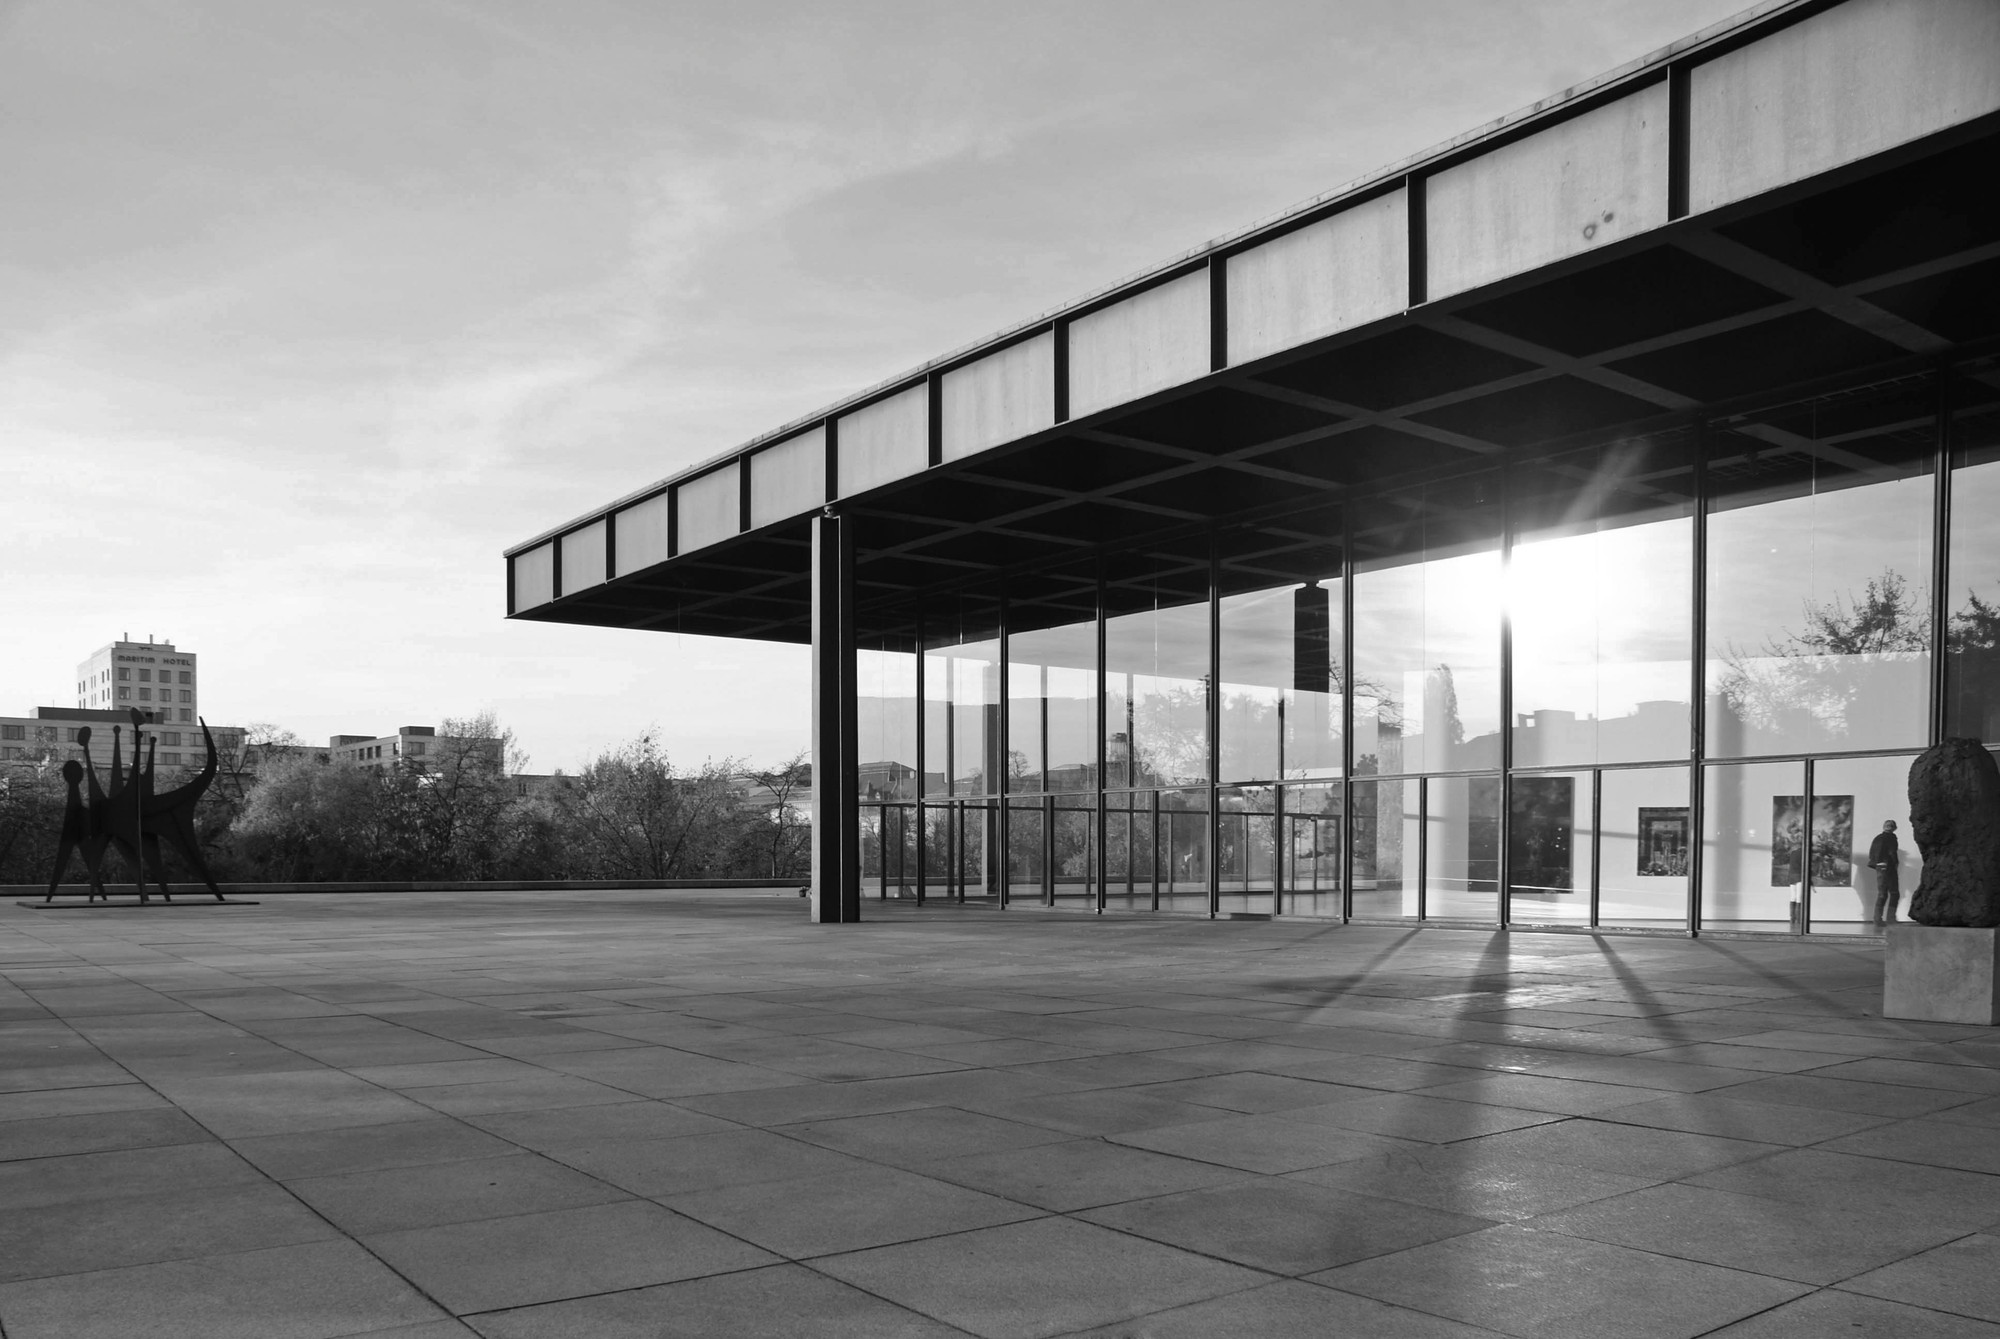 cl sicos de arquitectura neue nationalgalerie mies van der rohe plataforma arquitectura. Black Bedroom Furniture Sets. Home Design Ideas